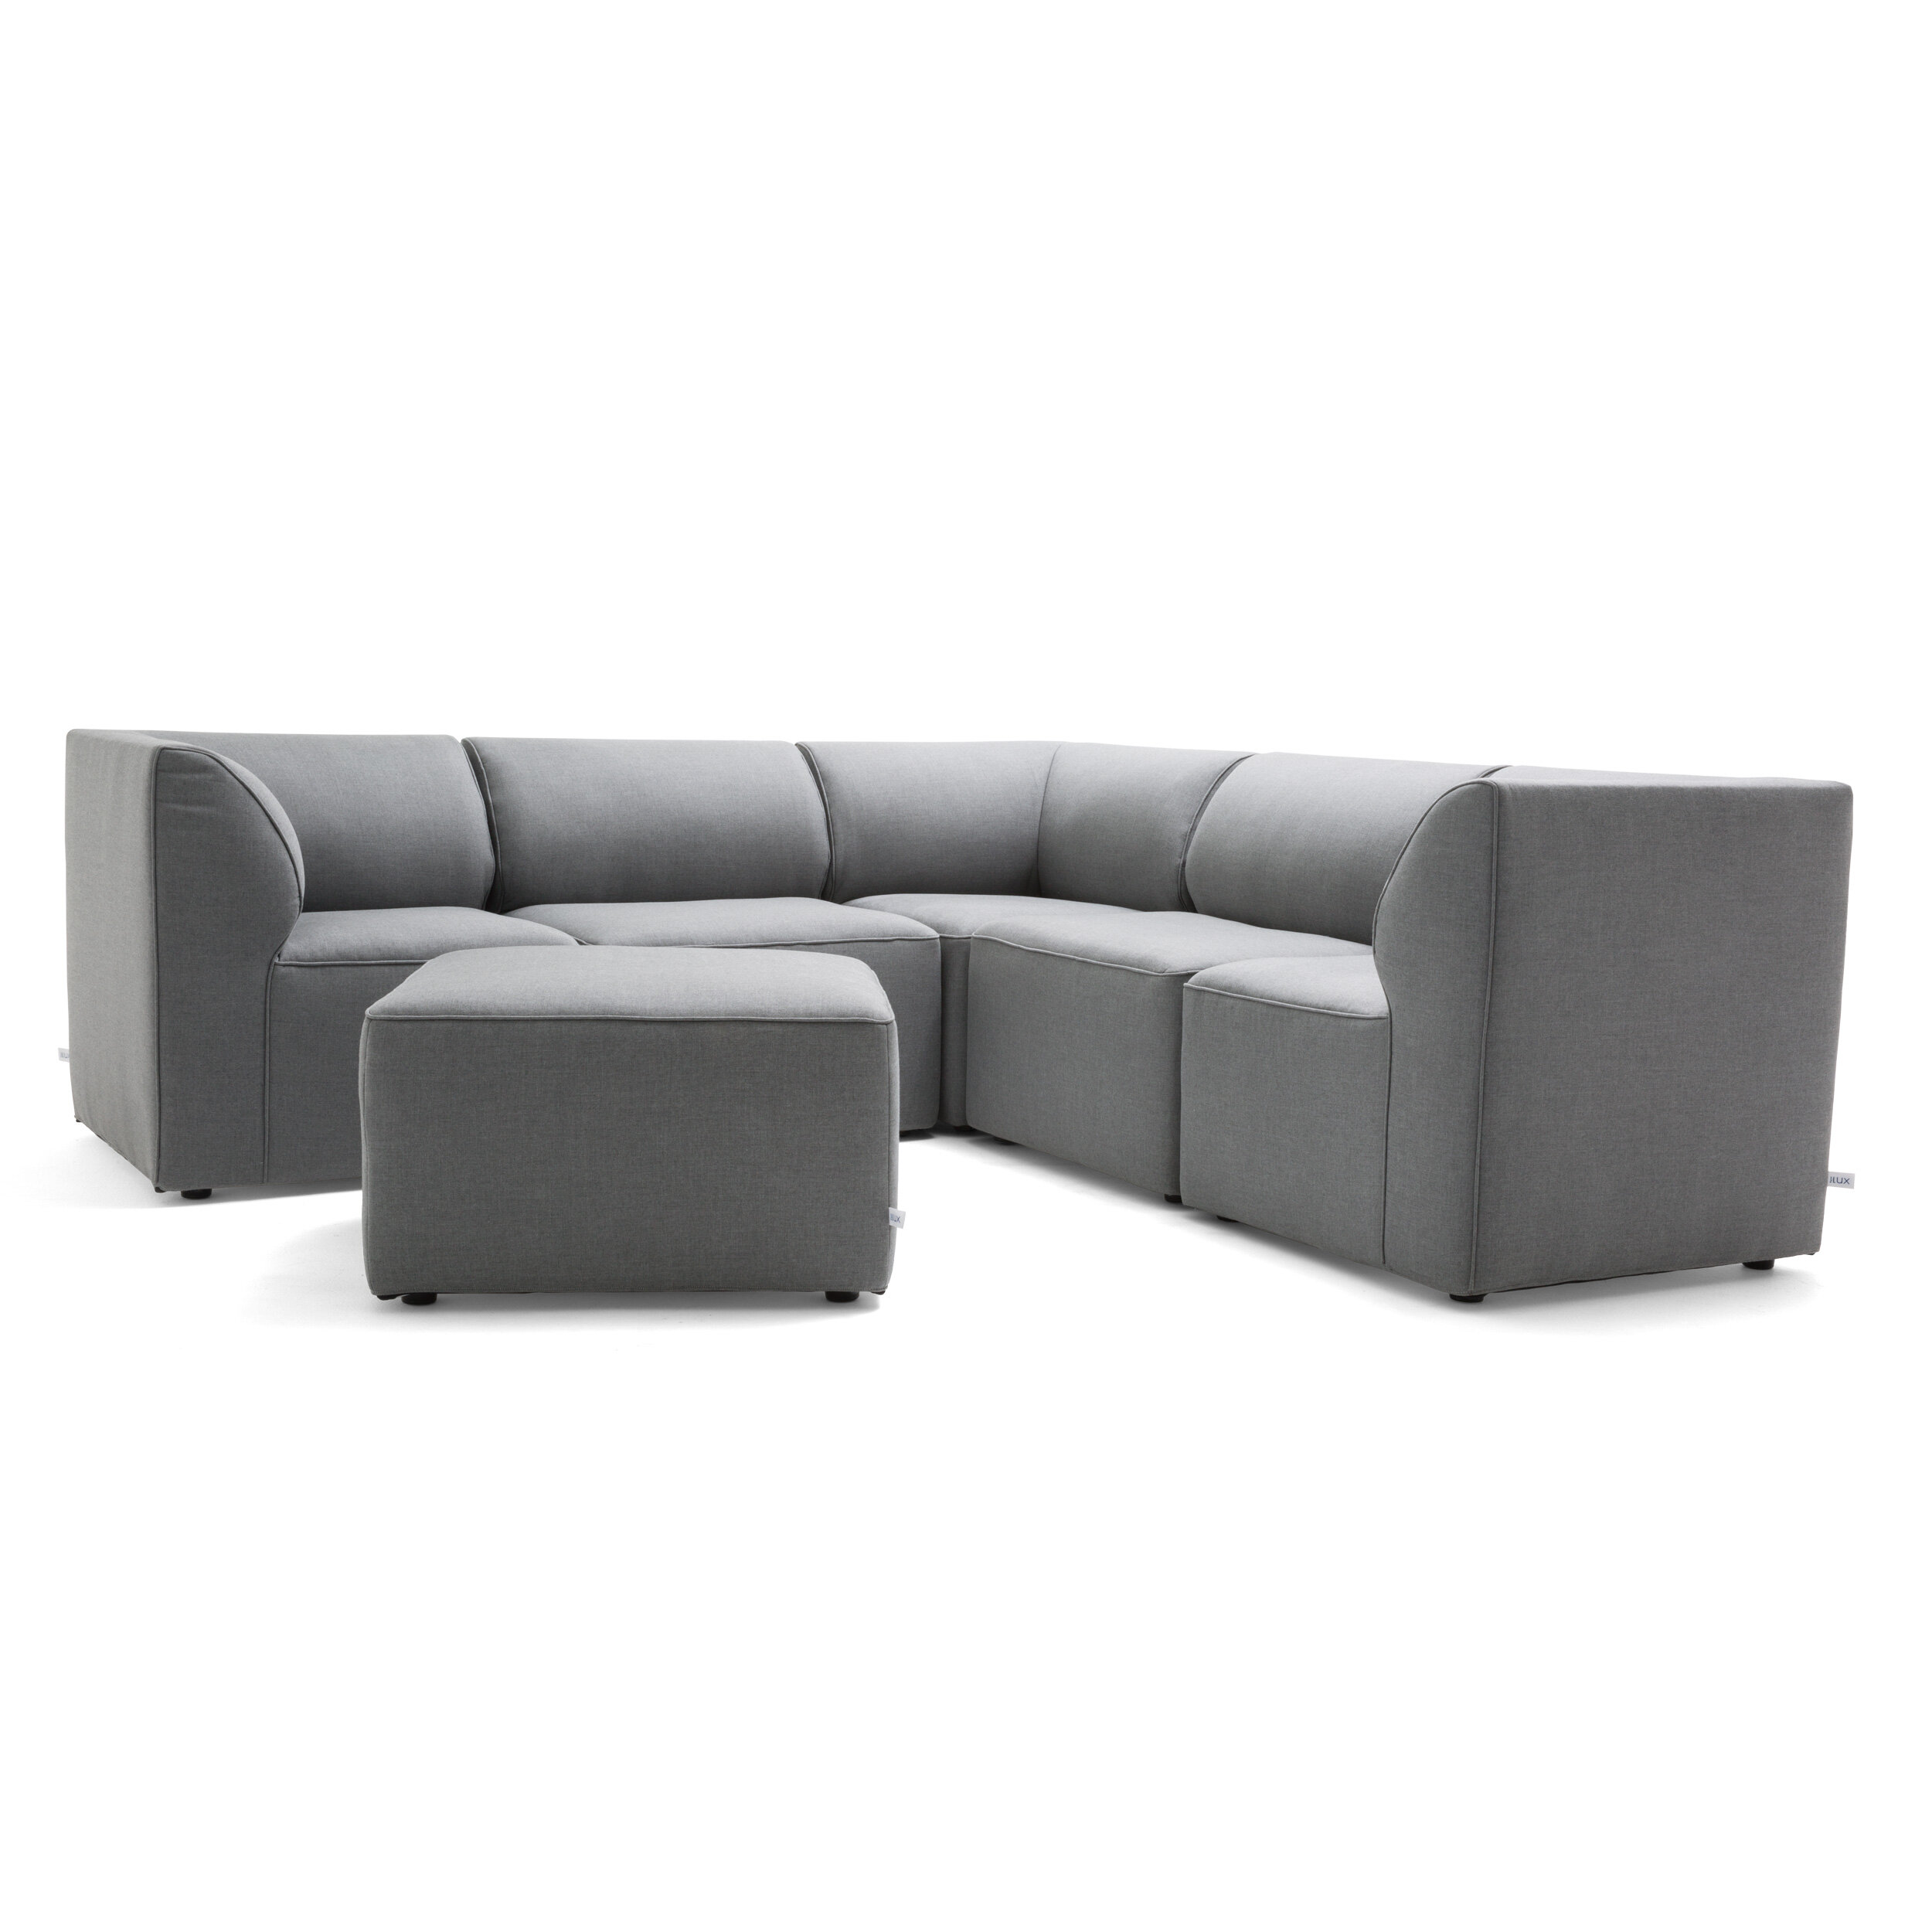 225 & Comfort Research Big Joe Patio Sectional with Cushions ...